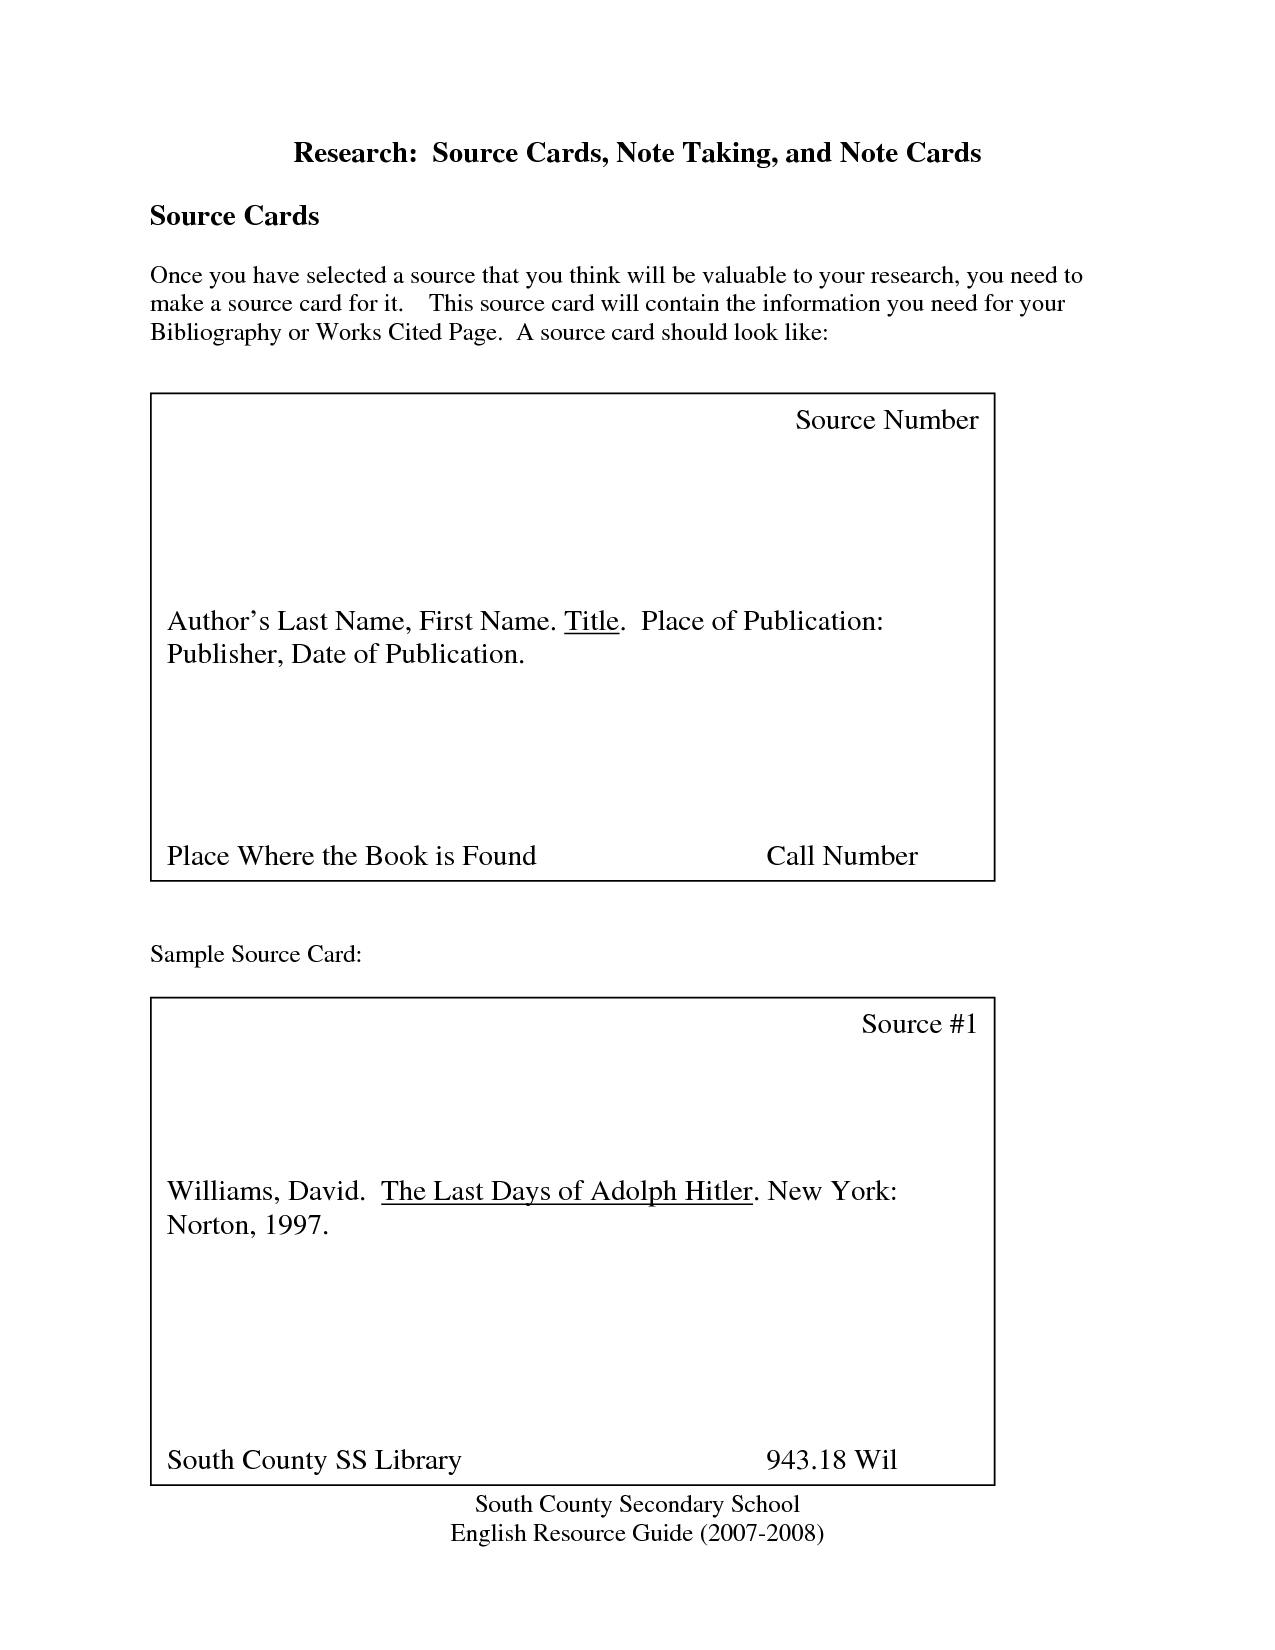 013 Research Paper Note Card Templates 442160 Cards Rare For Formatting Notecards Papers Mla Digital Full